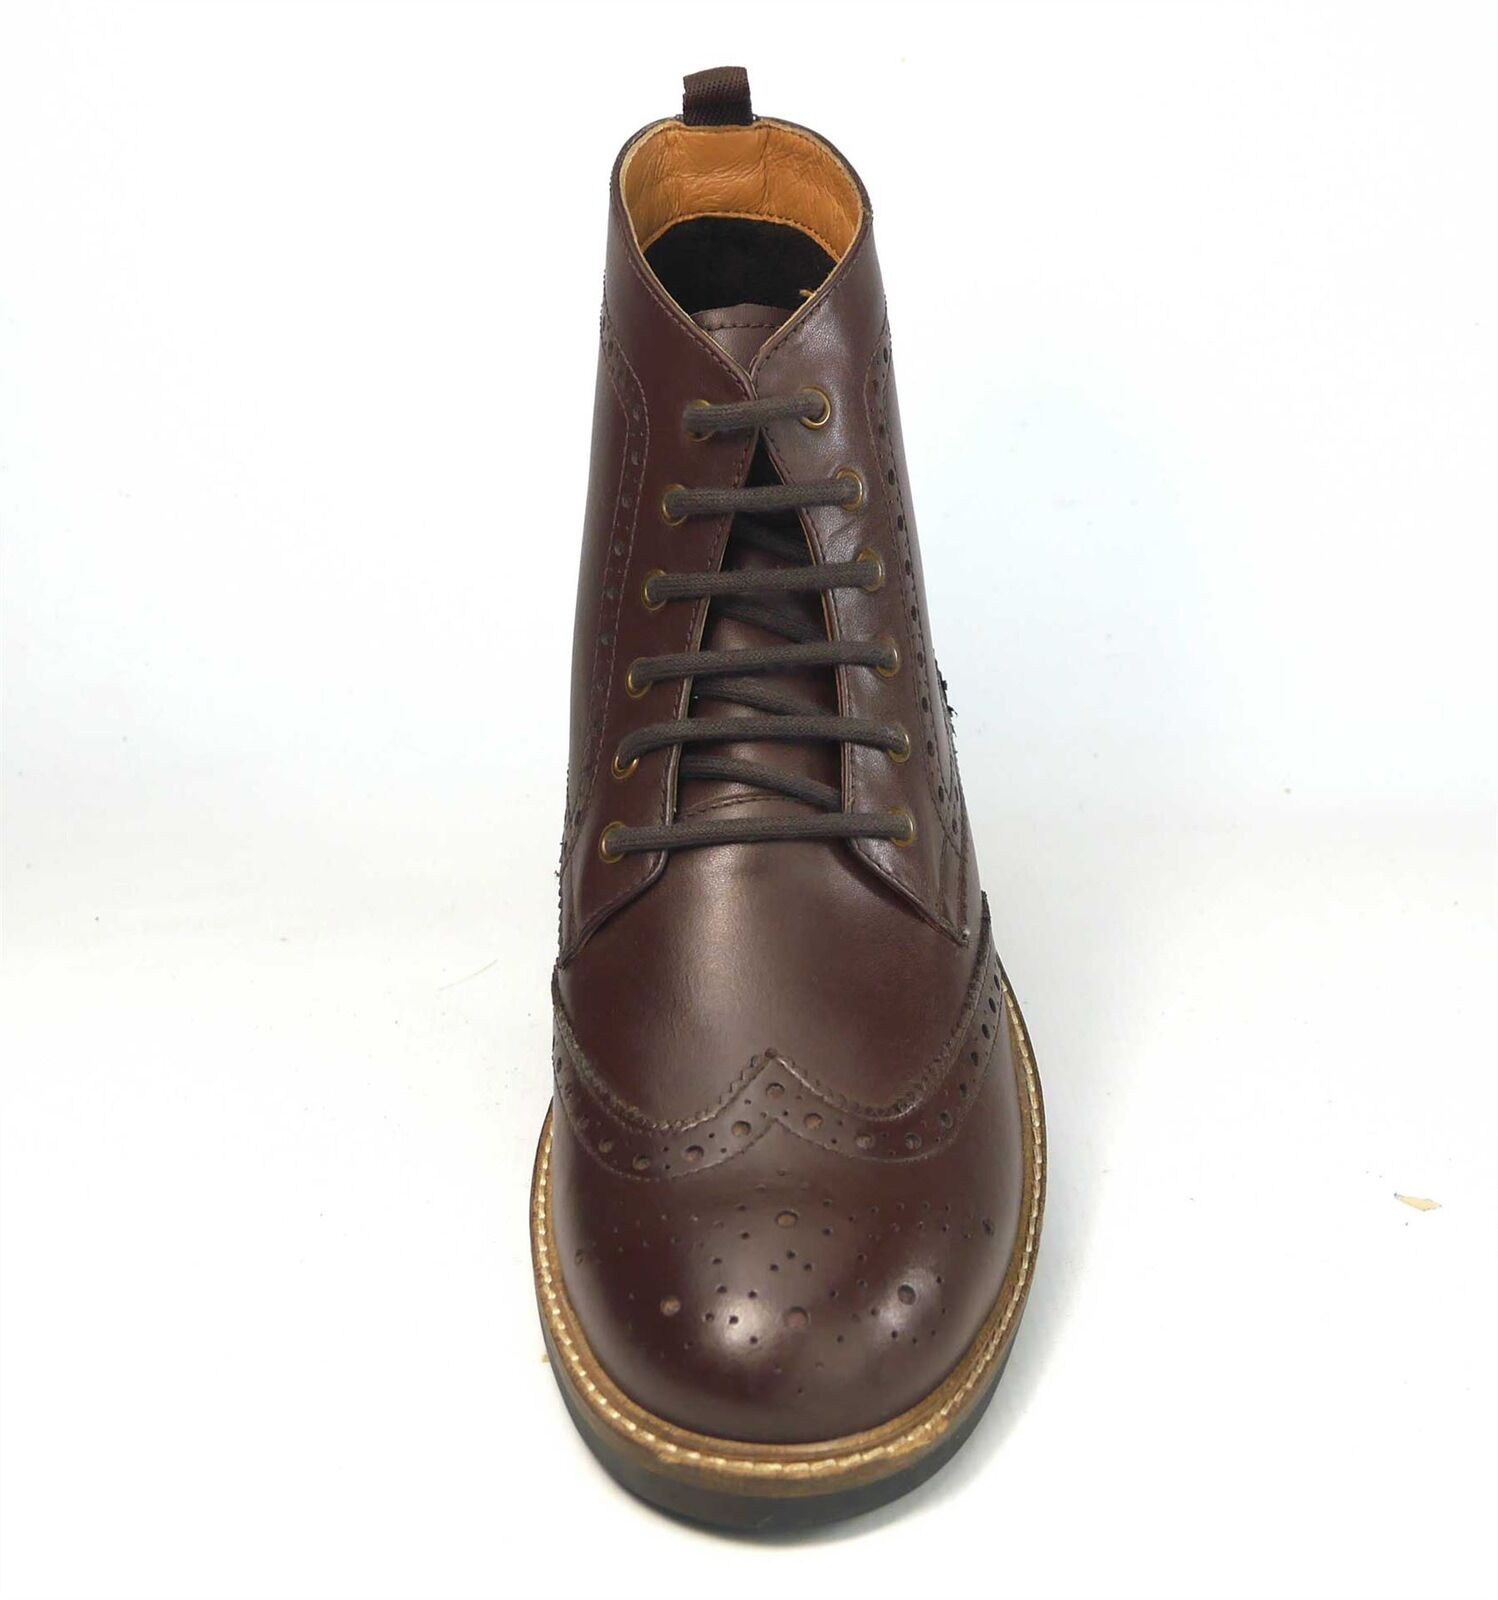 Frank James Hackney Real Boots Leather Lace Up Brogue Boots Real Brown b867f3